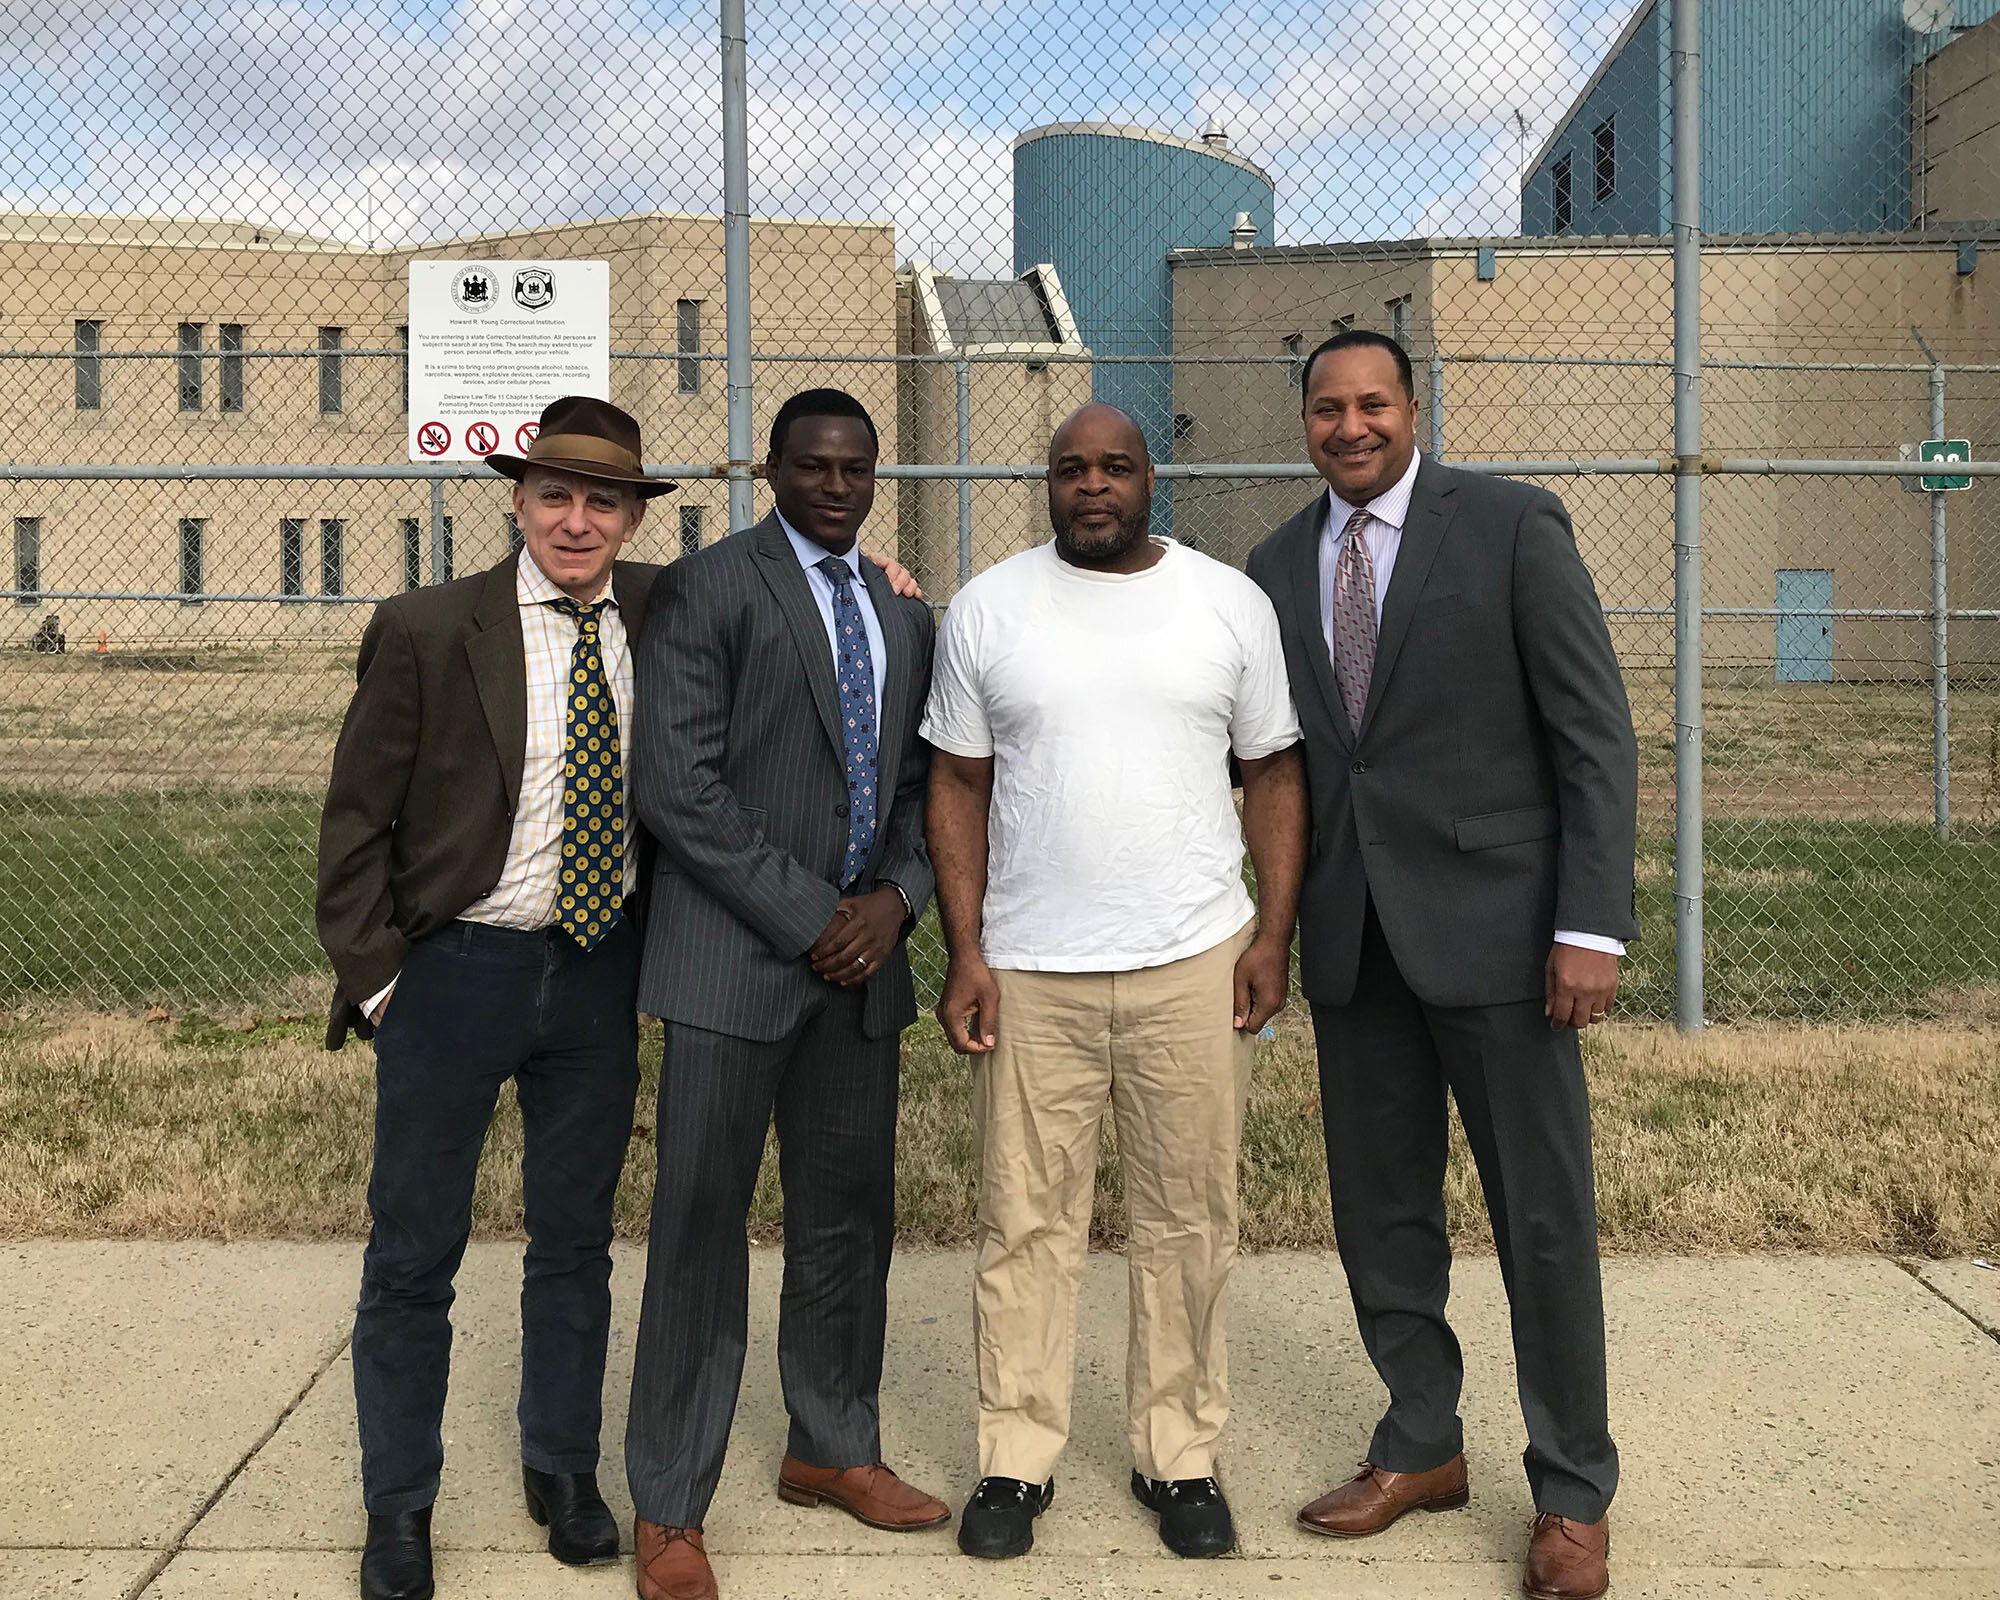 Elmer Daniels (2nd from right) was released from a Delaware prison last year, with assistance from (L to R) attorney Herb Mondros, lead attorney Emeka Igwe, and lead investigator Terence Jones.